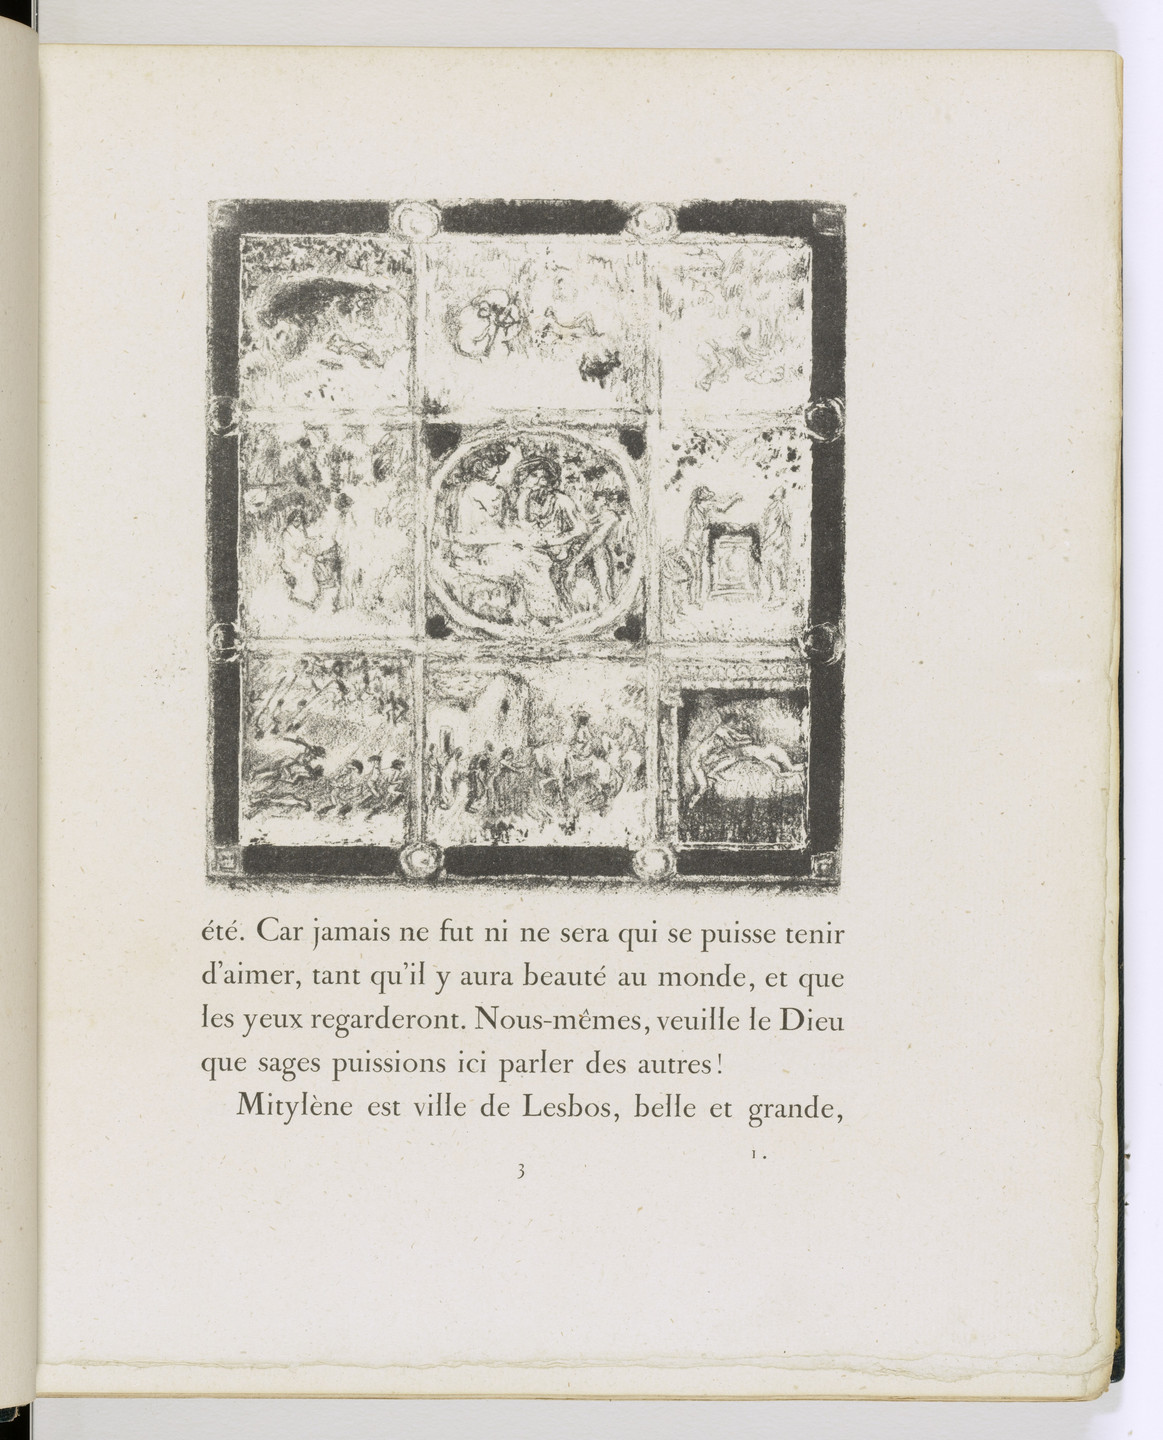 Pierre Bonnard. In-text plate (page 3) from Daphnis et Chloé. 1902